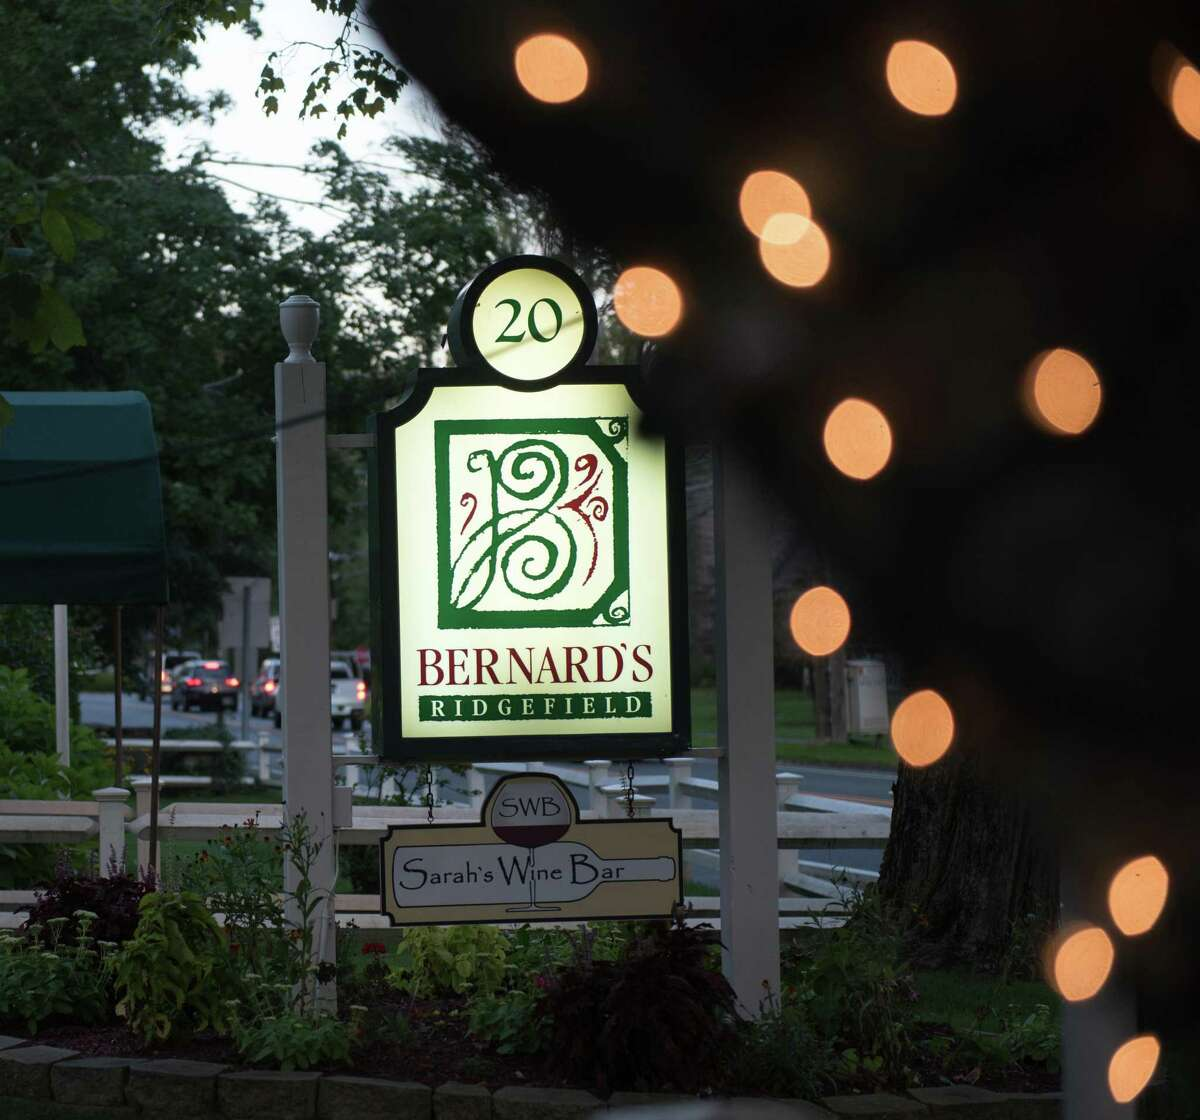 Bernard's and Sarah's Wine Bar are at 20 West Lane in Ridgefield. The cars visible behind are at the intersection of West Lane and Main Street, by the town's well known fountain.